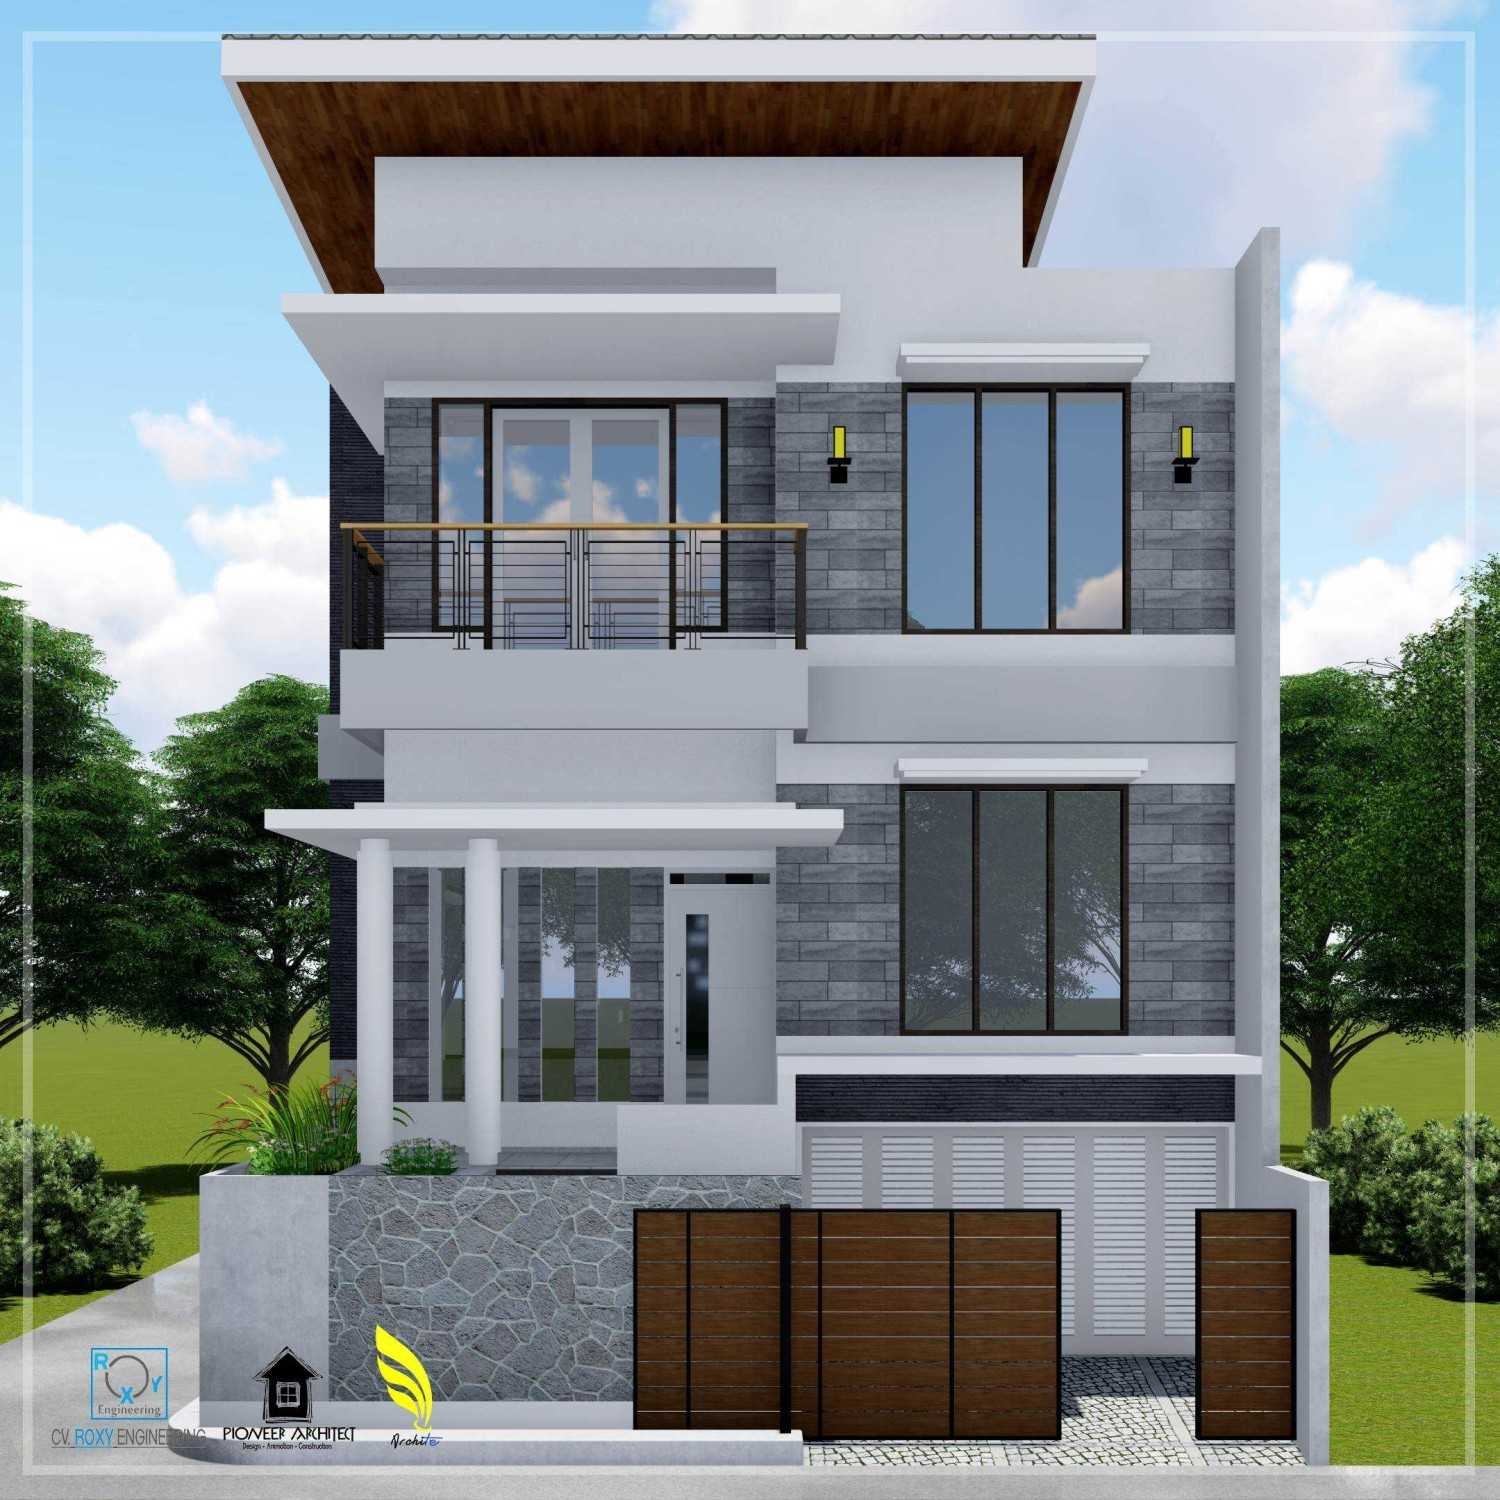 Pionner Architect N House Lhokseumawe, Kota Lhokseumawe, Aceh, Indonesia Lhokseumawe, Kota Lhokseumawe, Aceh, Indonesia Front View Modern 43257